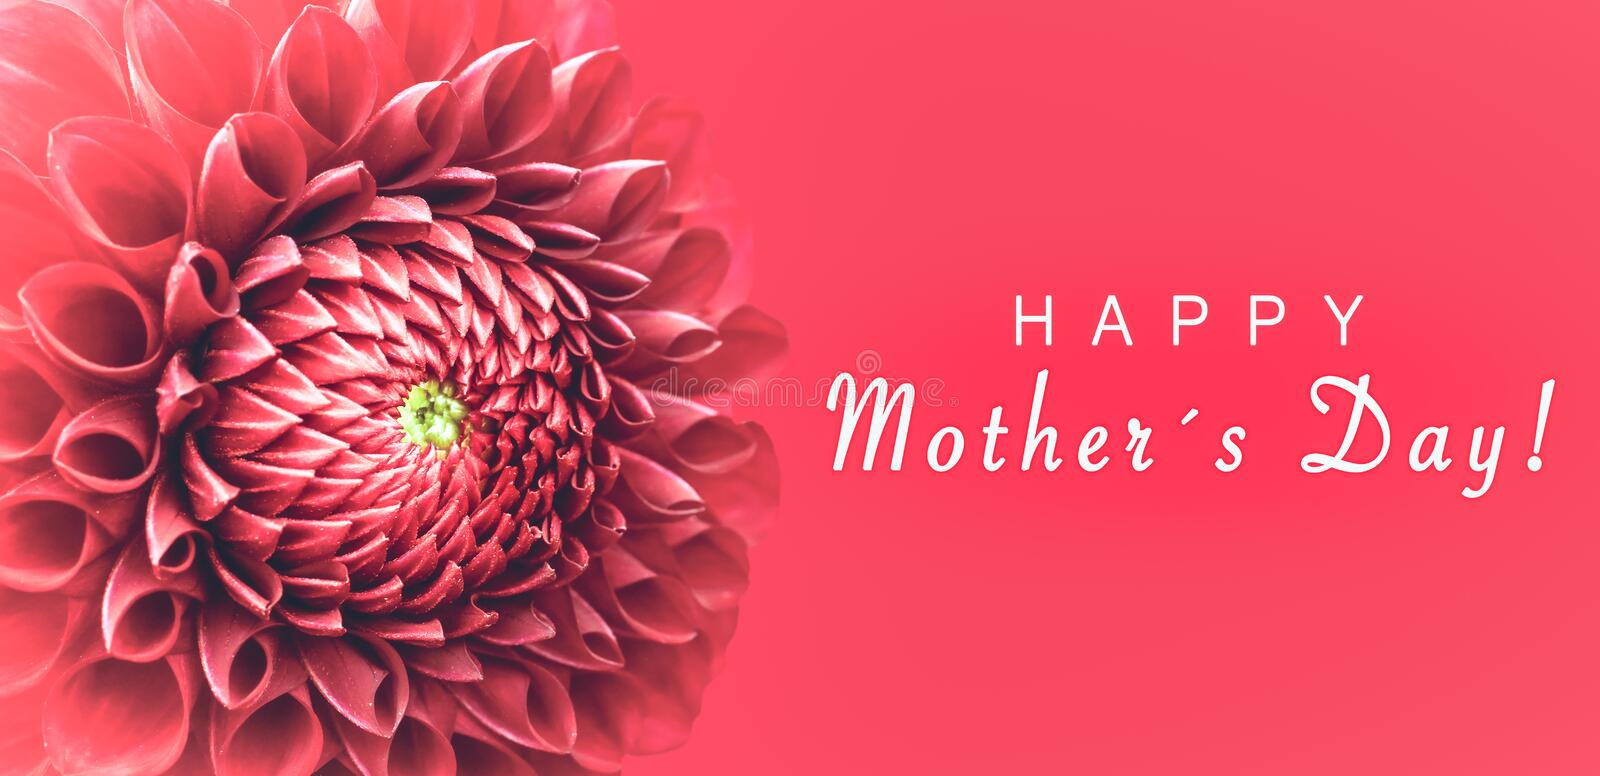 Happy Mothers`s Day! and pink dahlia flower details macro photo as border frame with wide banner background and message text vector illustration